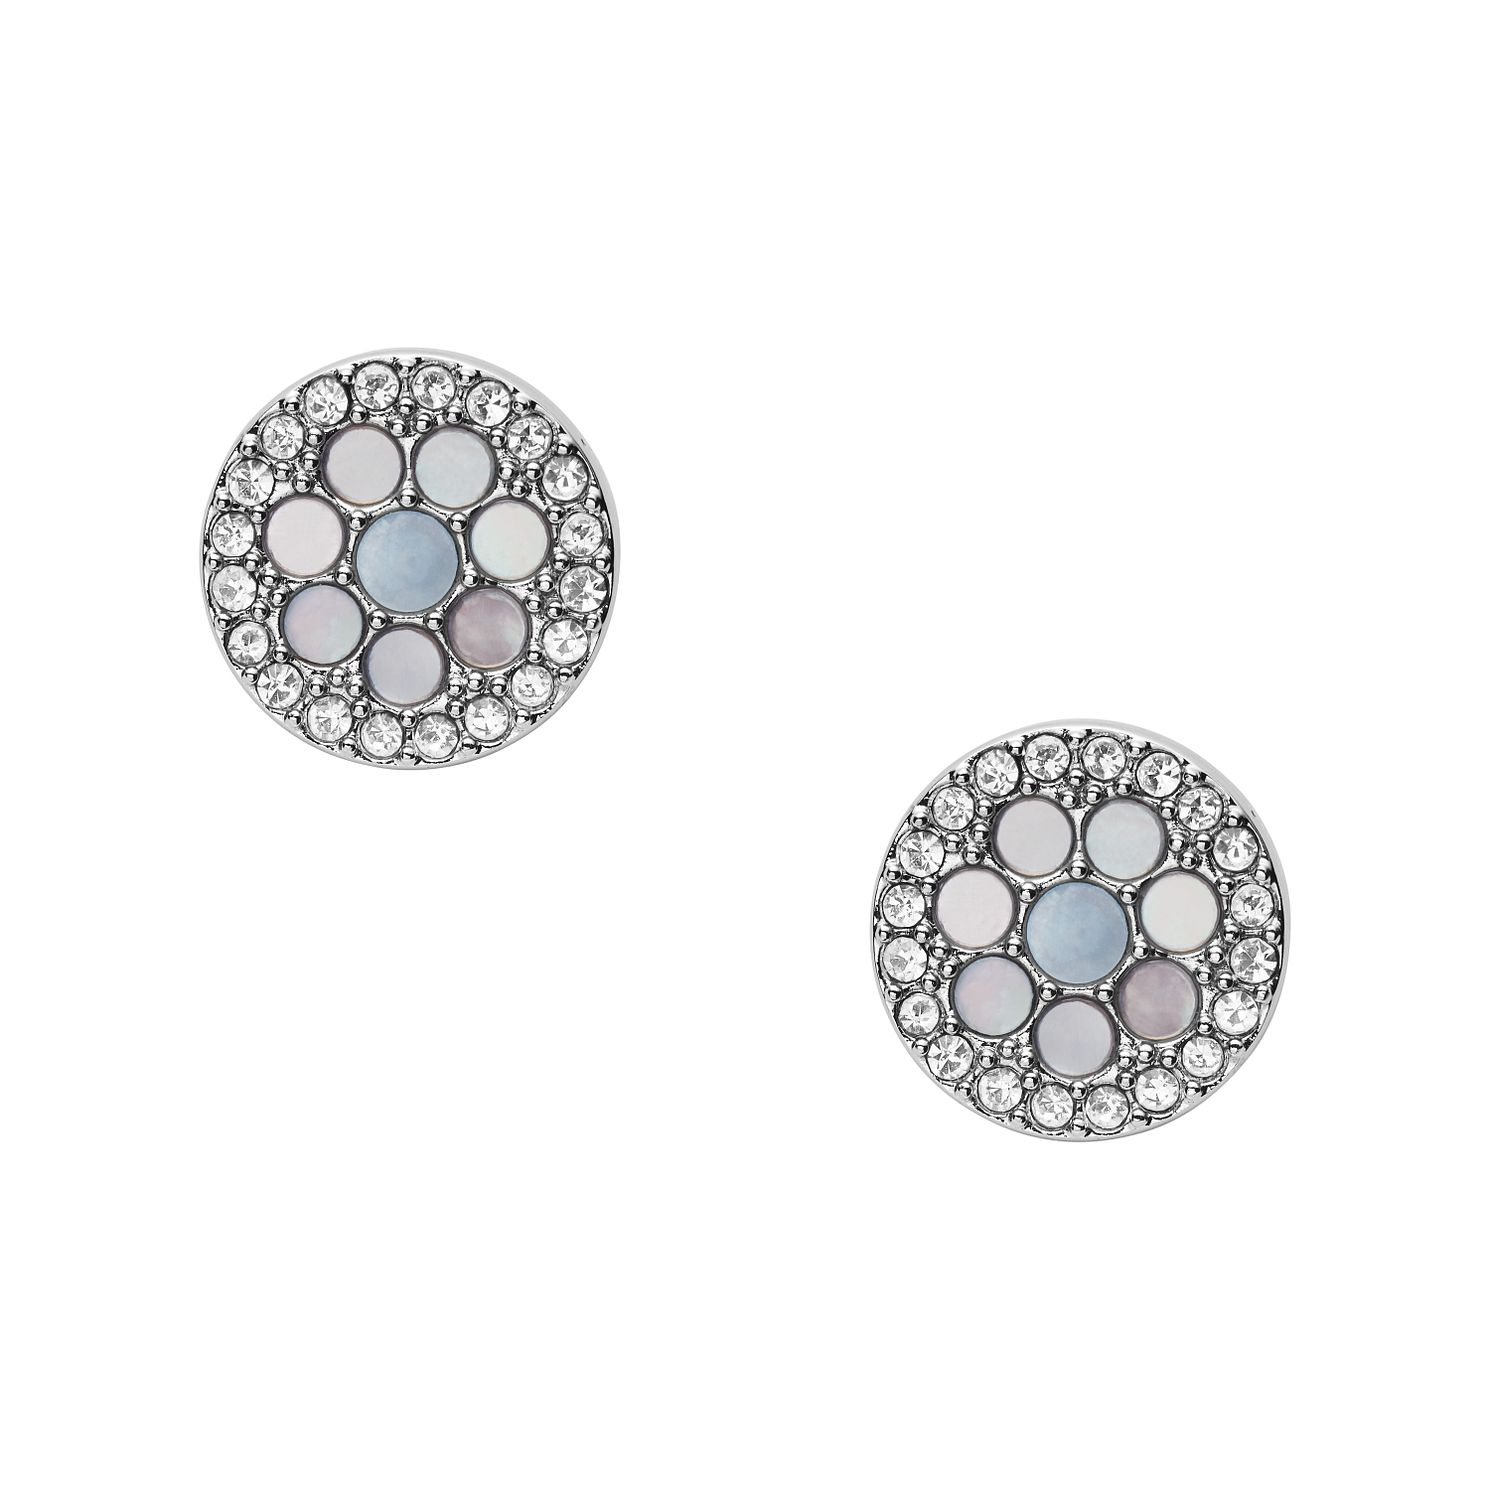 Fossil Vintage Glitz Silver Tone Crystal Stud Earrings - Product number 5959942